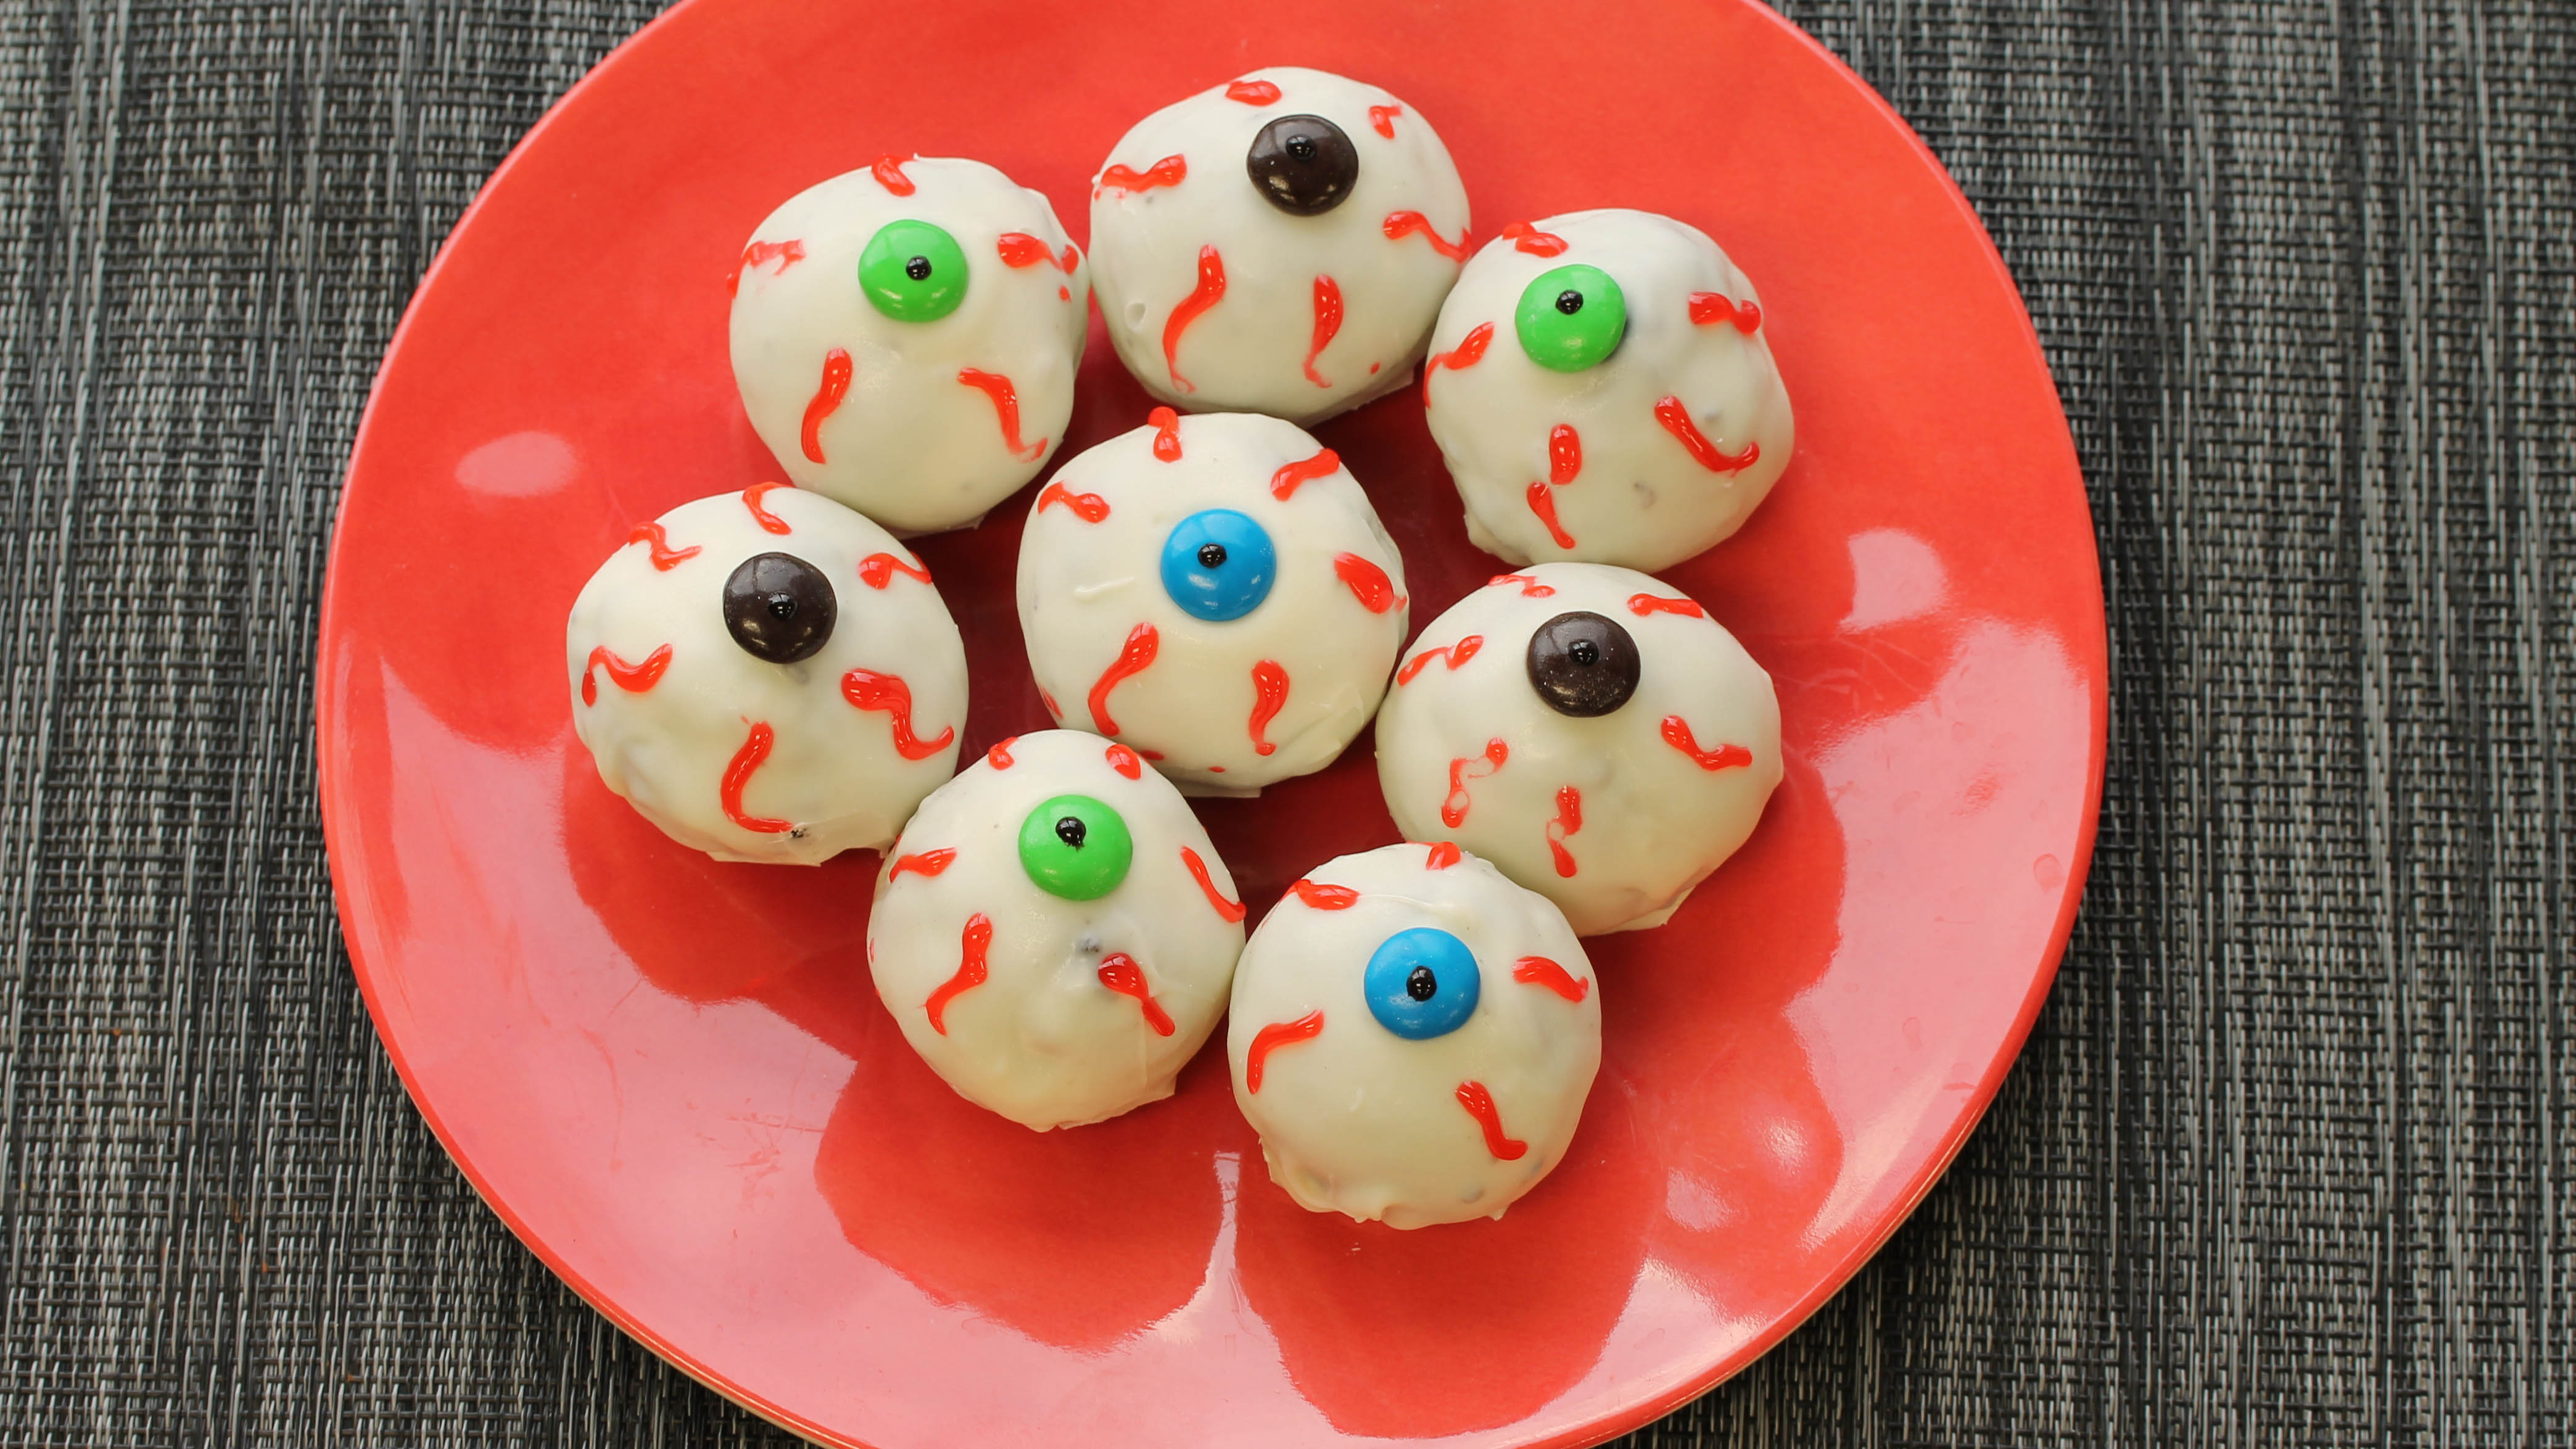 Chocolate Sandwich Eyeball Cookies made with BiPro Whey Protein Powder